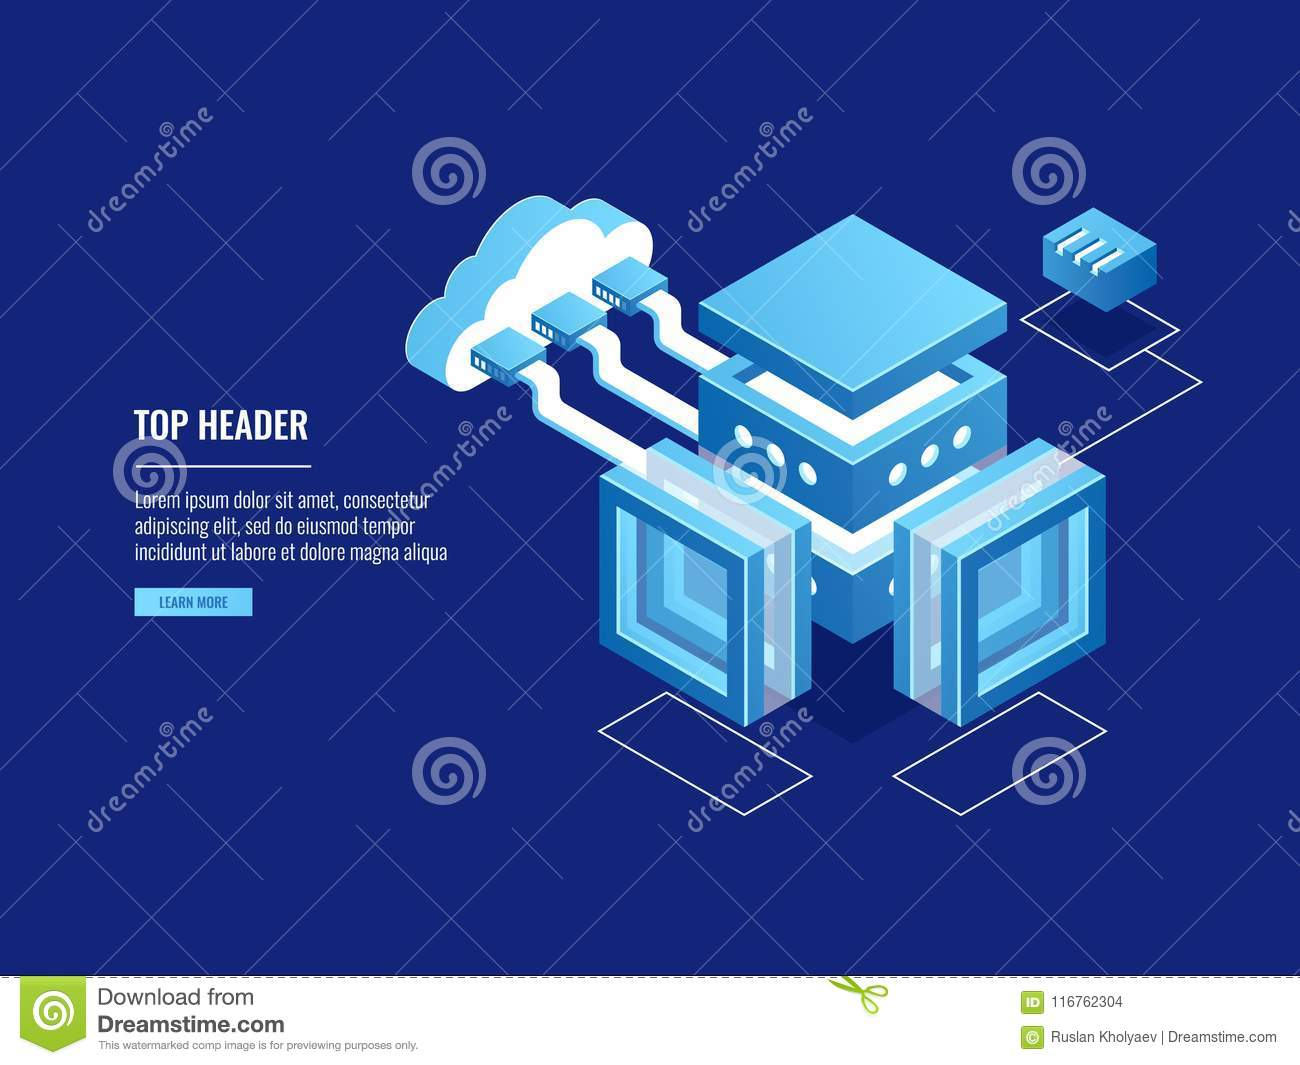 Cloud warehouse, data copy storage, server room, connection with cloud, data center database icon